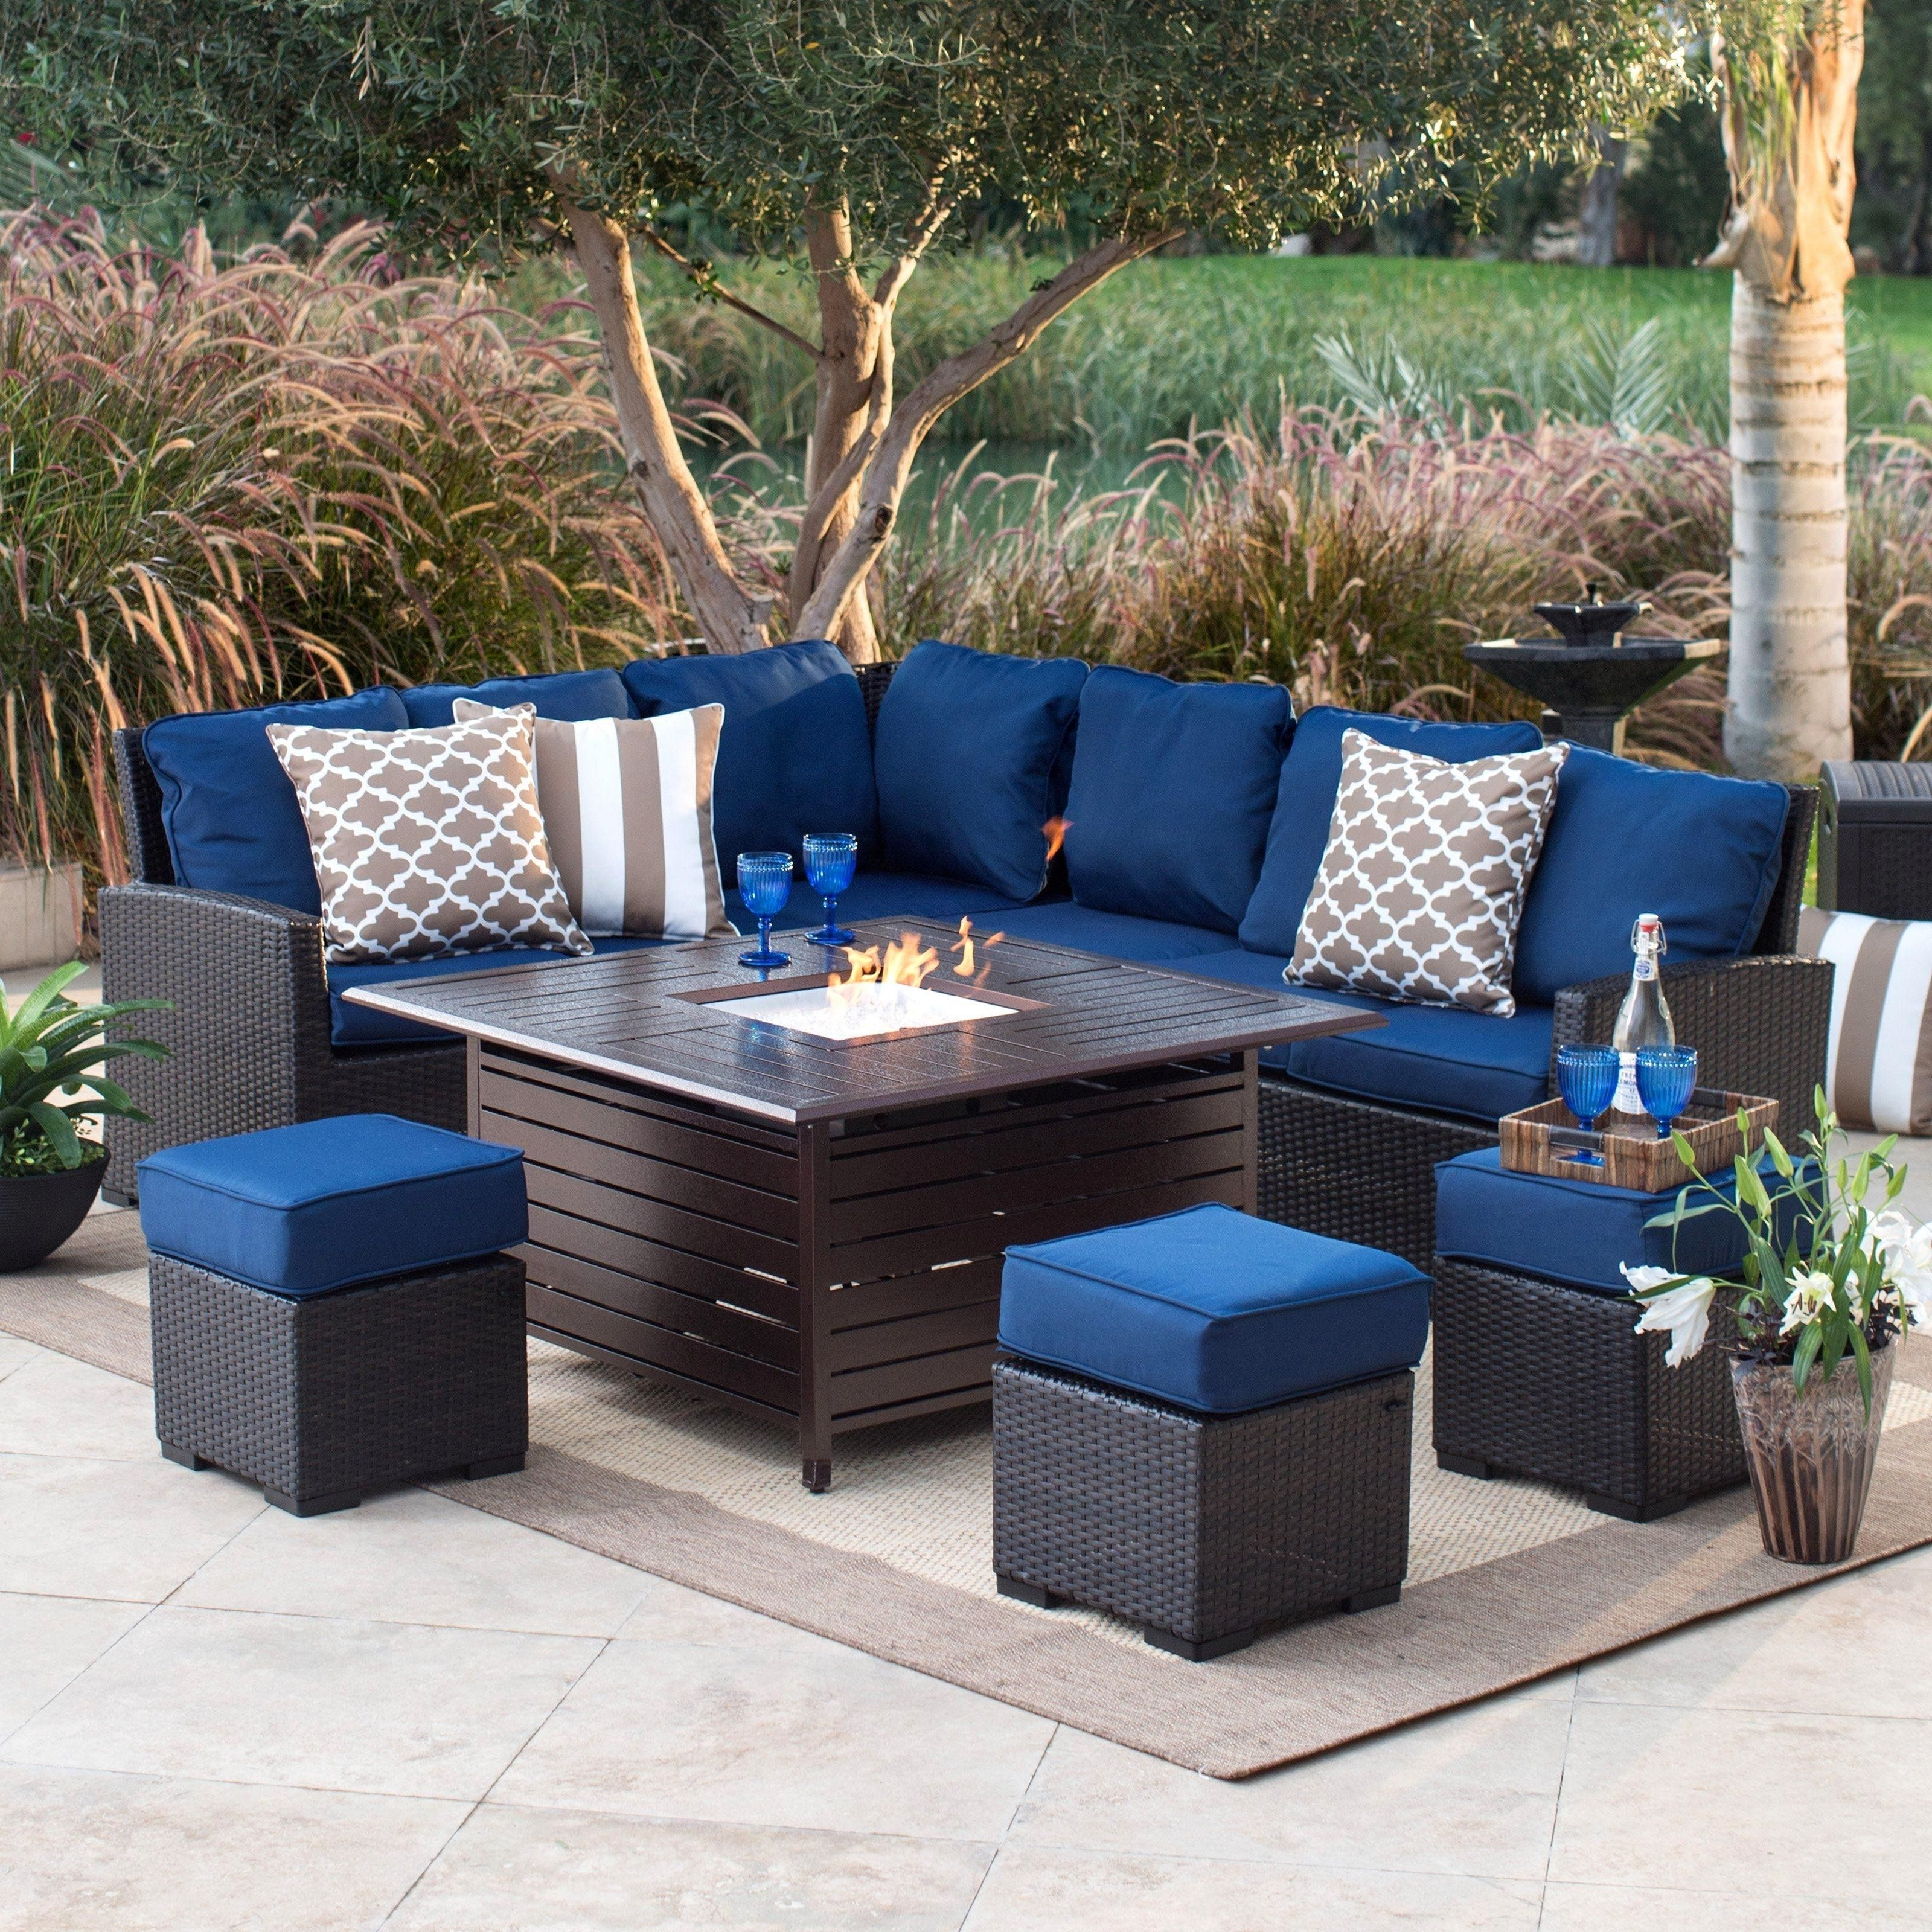 35+ Extraordinary Outdoor Living Room With Stunning ... on Living Room Fire Pit id=84248